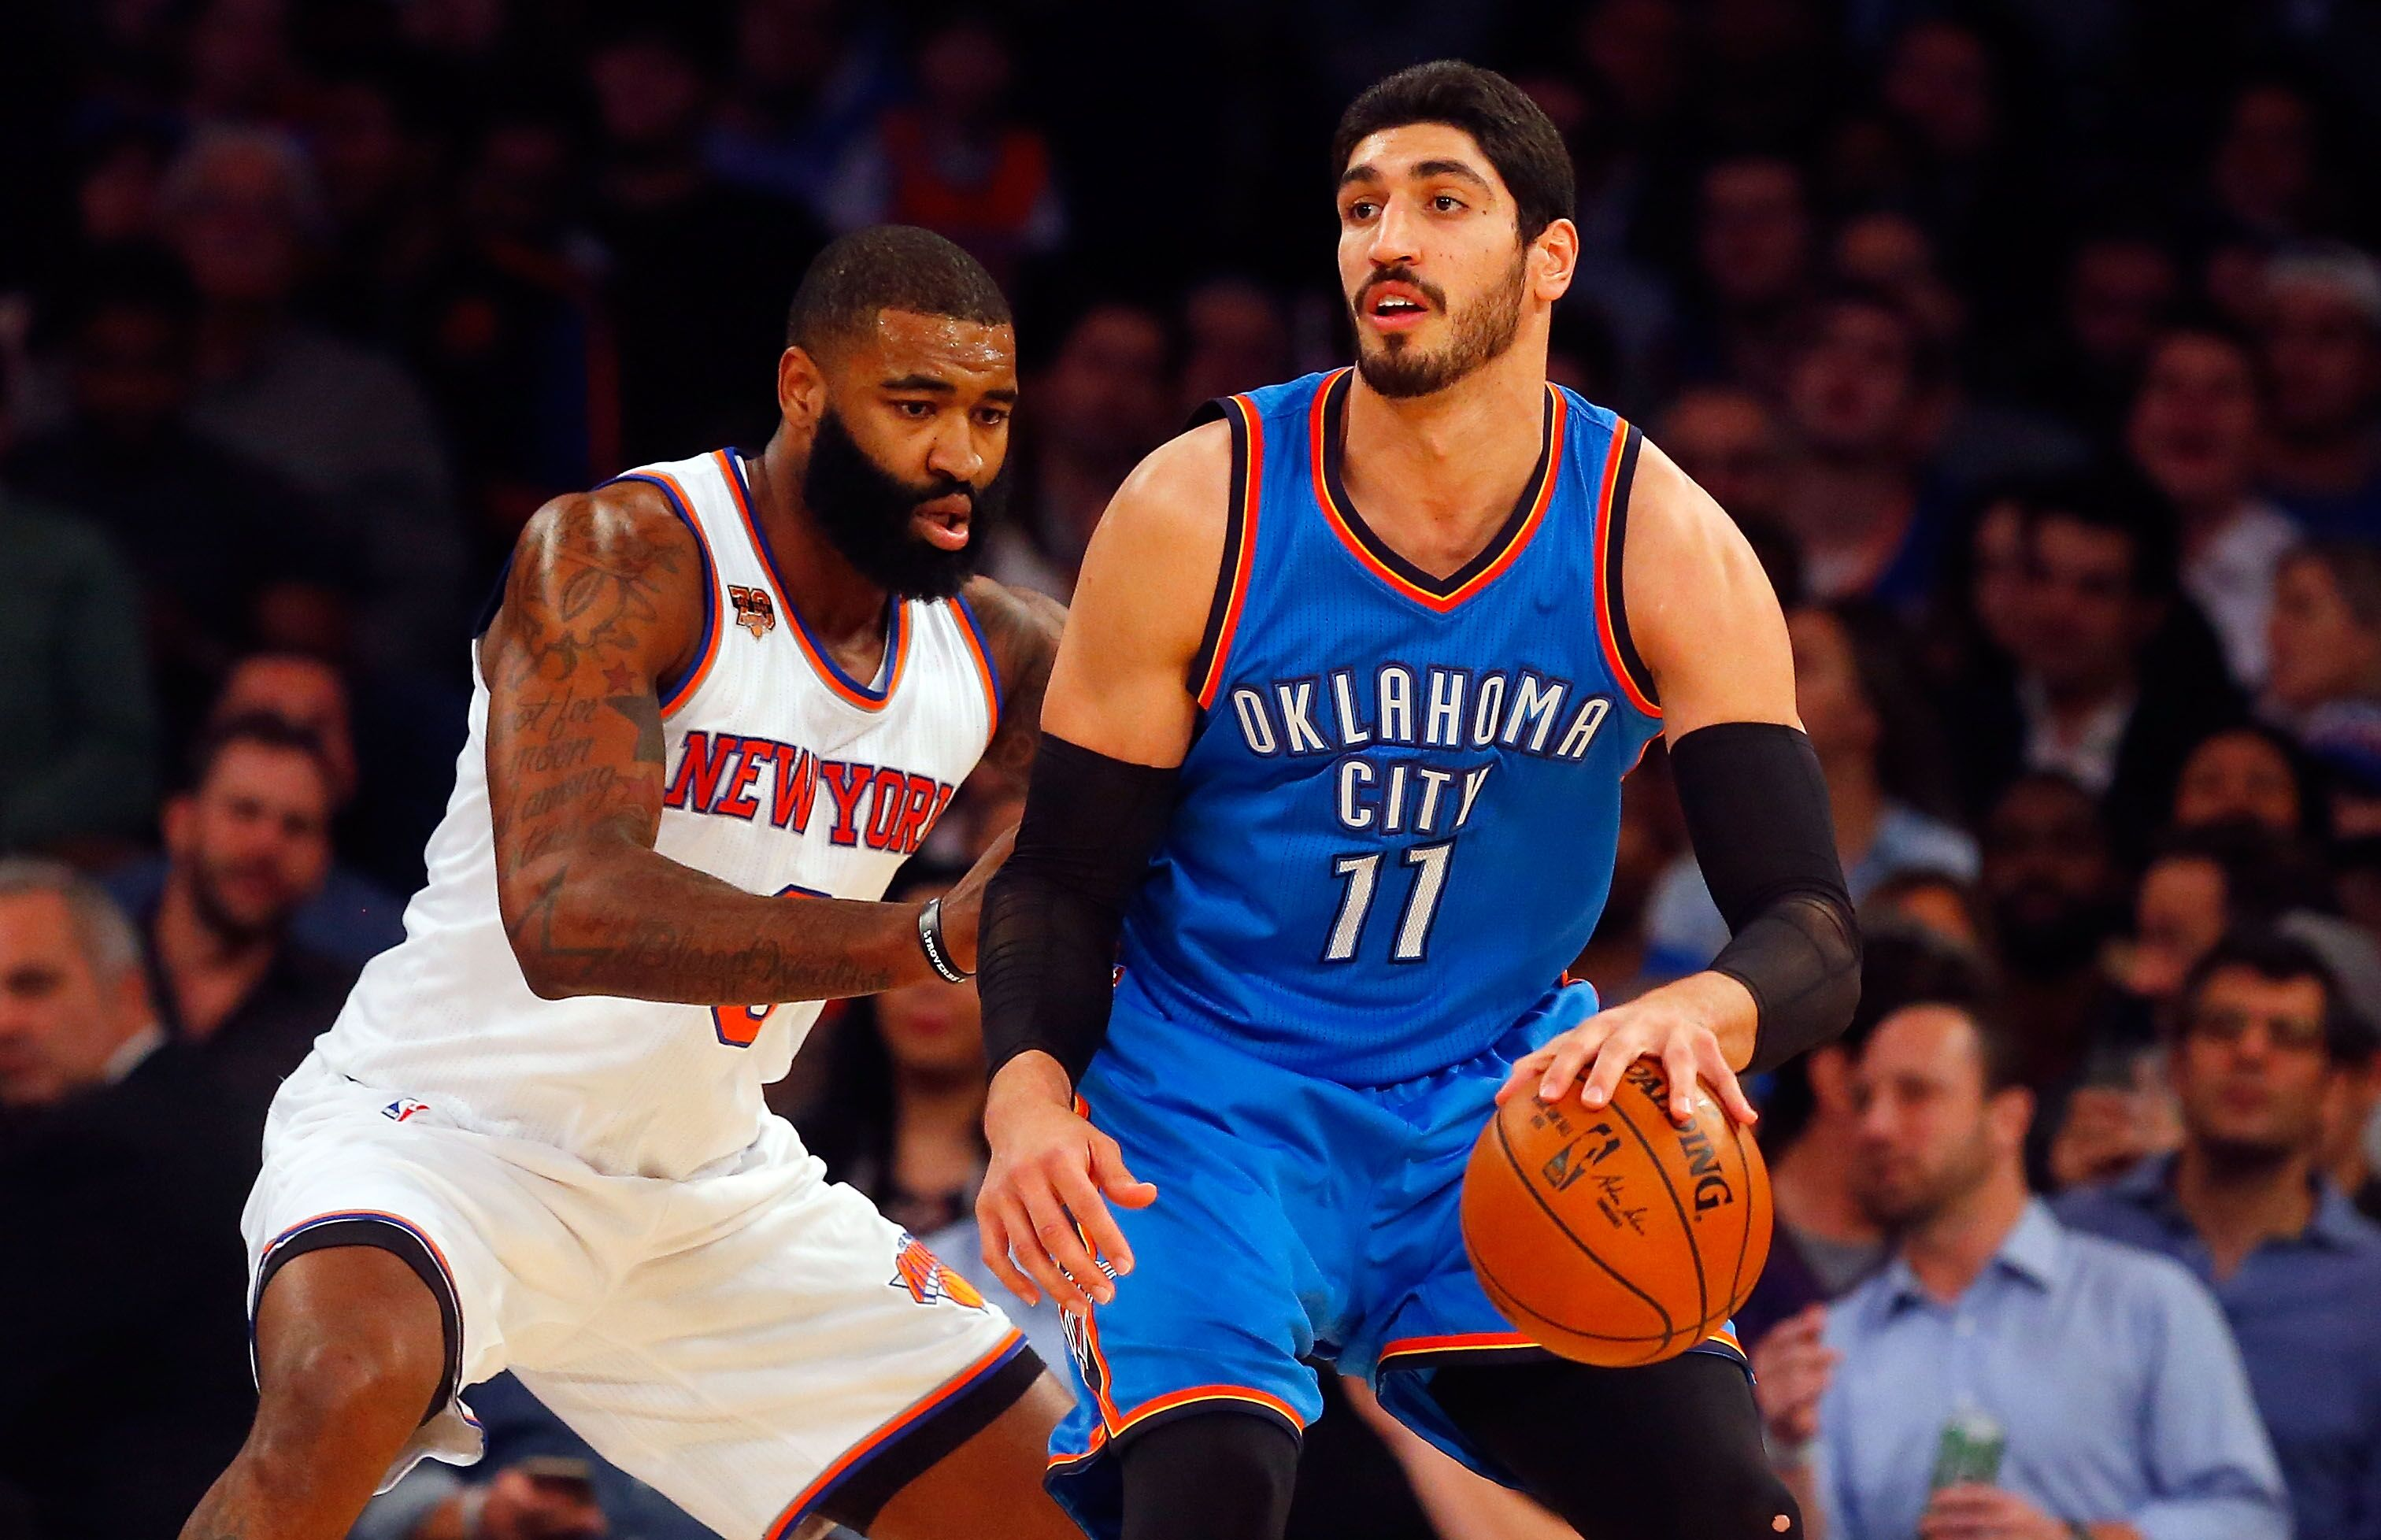 New York Knicks: New York Knicks: Five Reasons To Love Trading For Enes Kanter